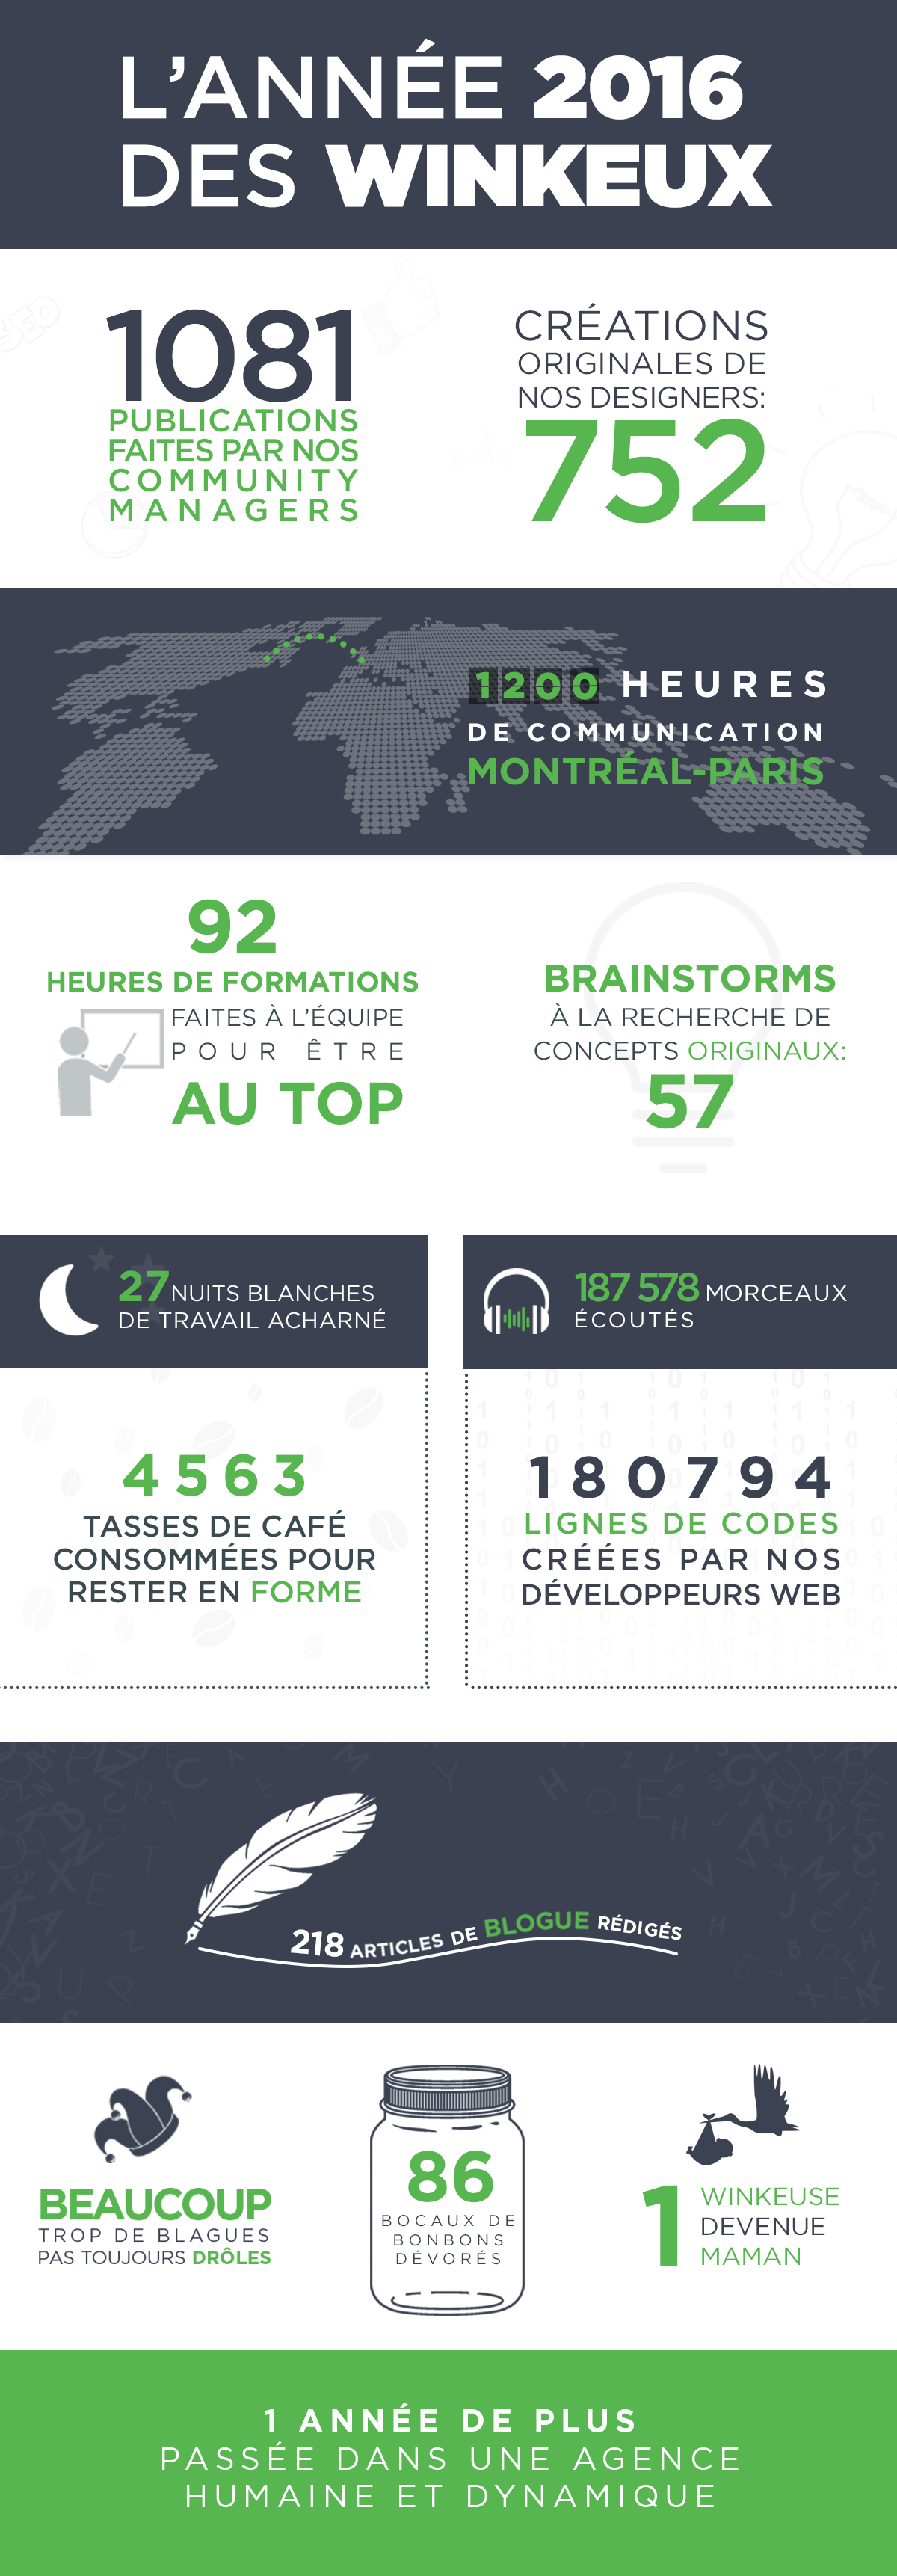 infographie-winkeux-2016